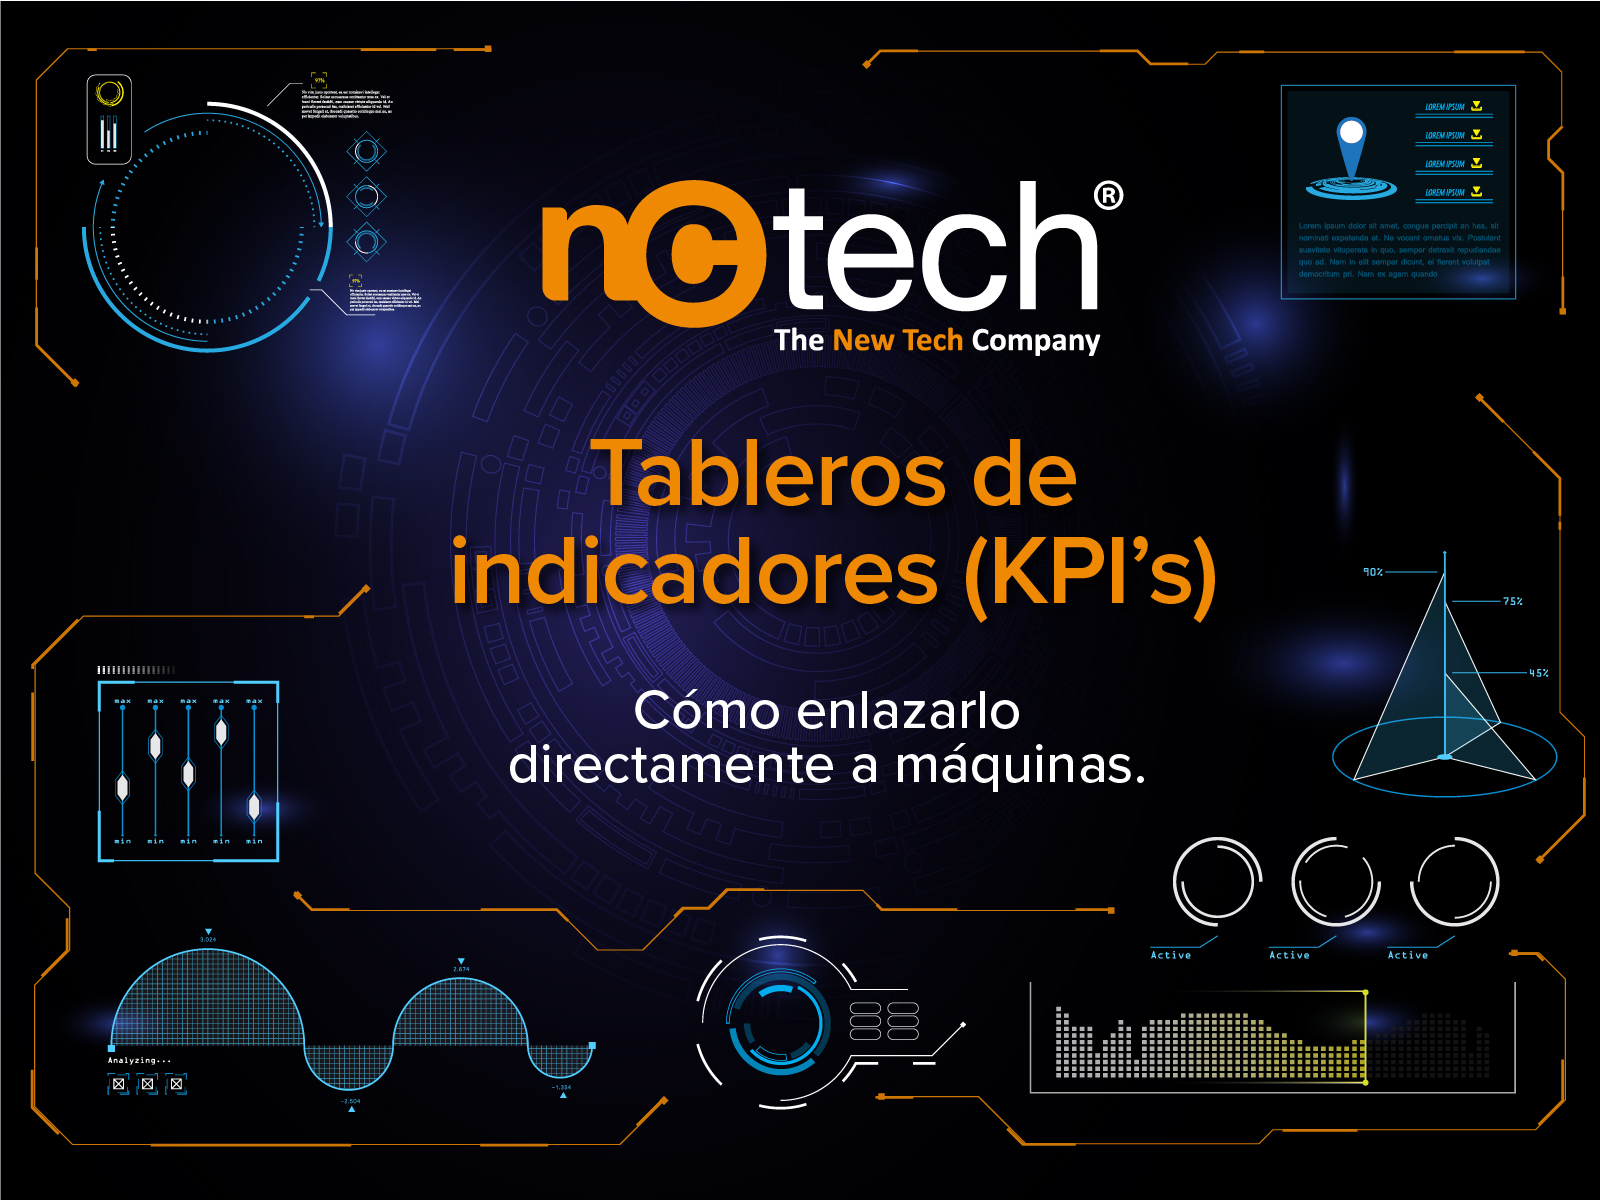 https://nctech.com.mx/wp-content/uploads/2019/06/260619_BLOG_IOT_DASHBOARDS-01.jpg